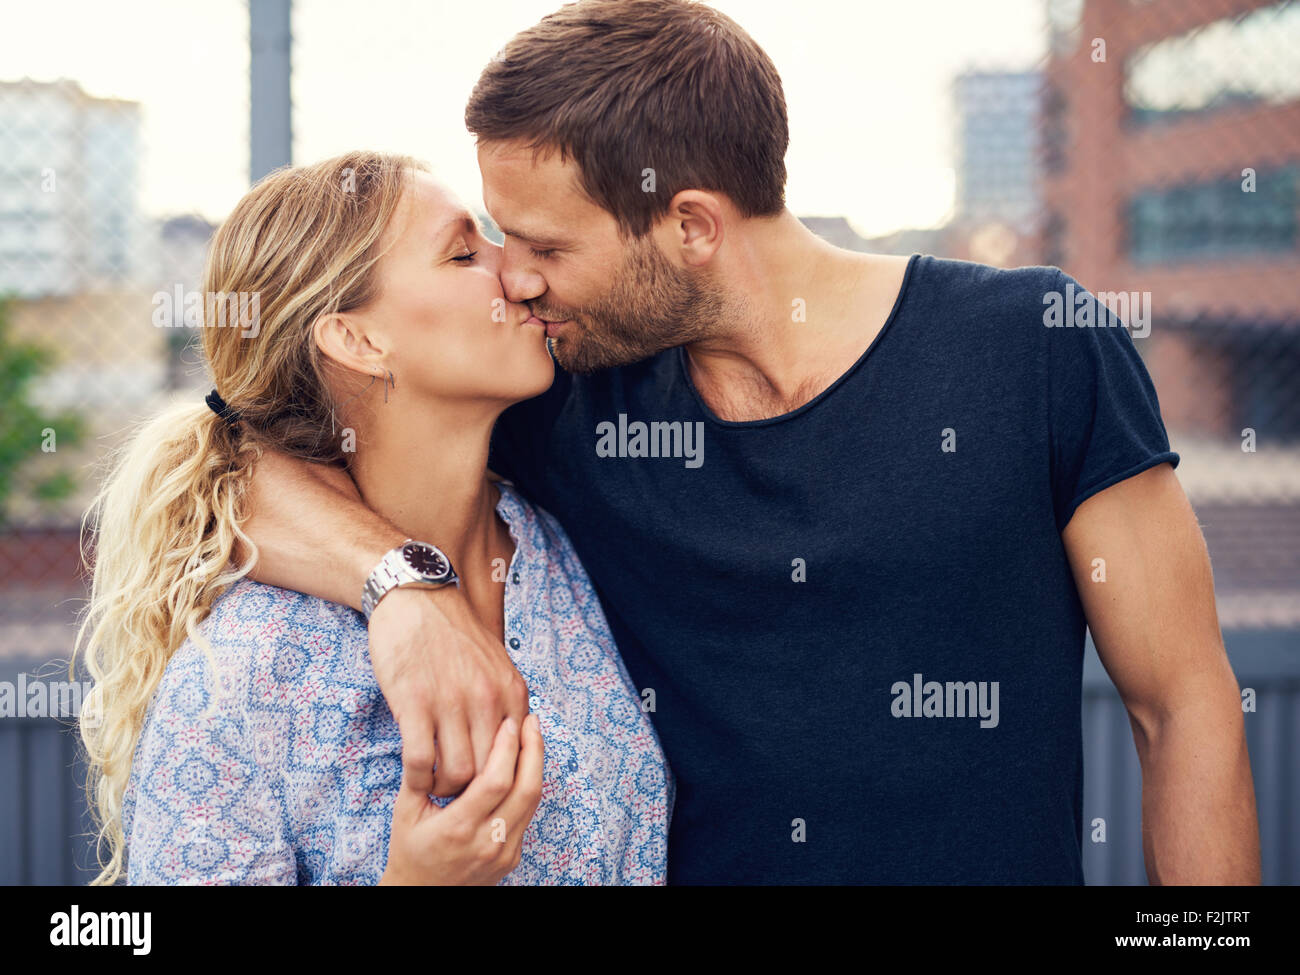 Amorous attractive young couple enjoy a romantic kiss as they stand arm in arm outdoors in an urban street - Stock Image